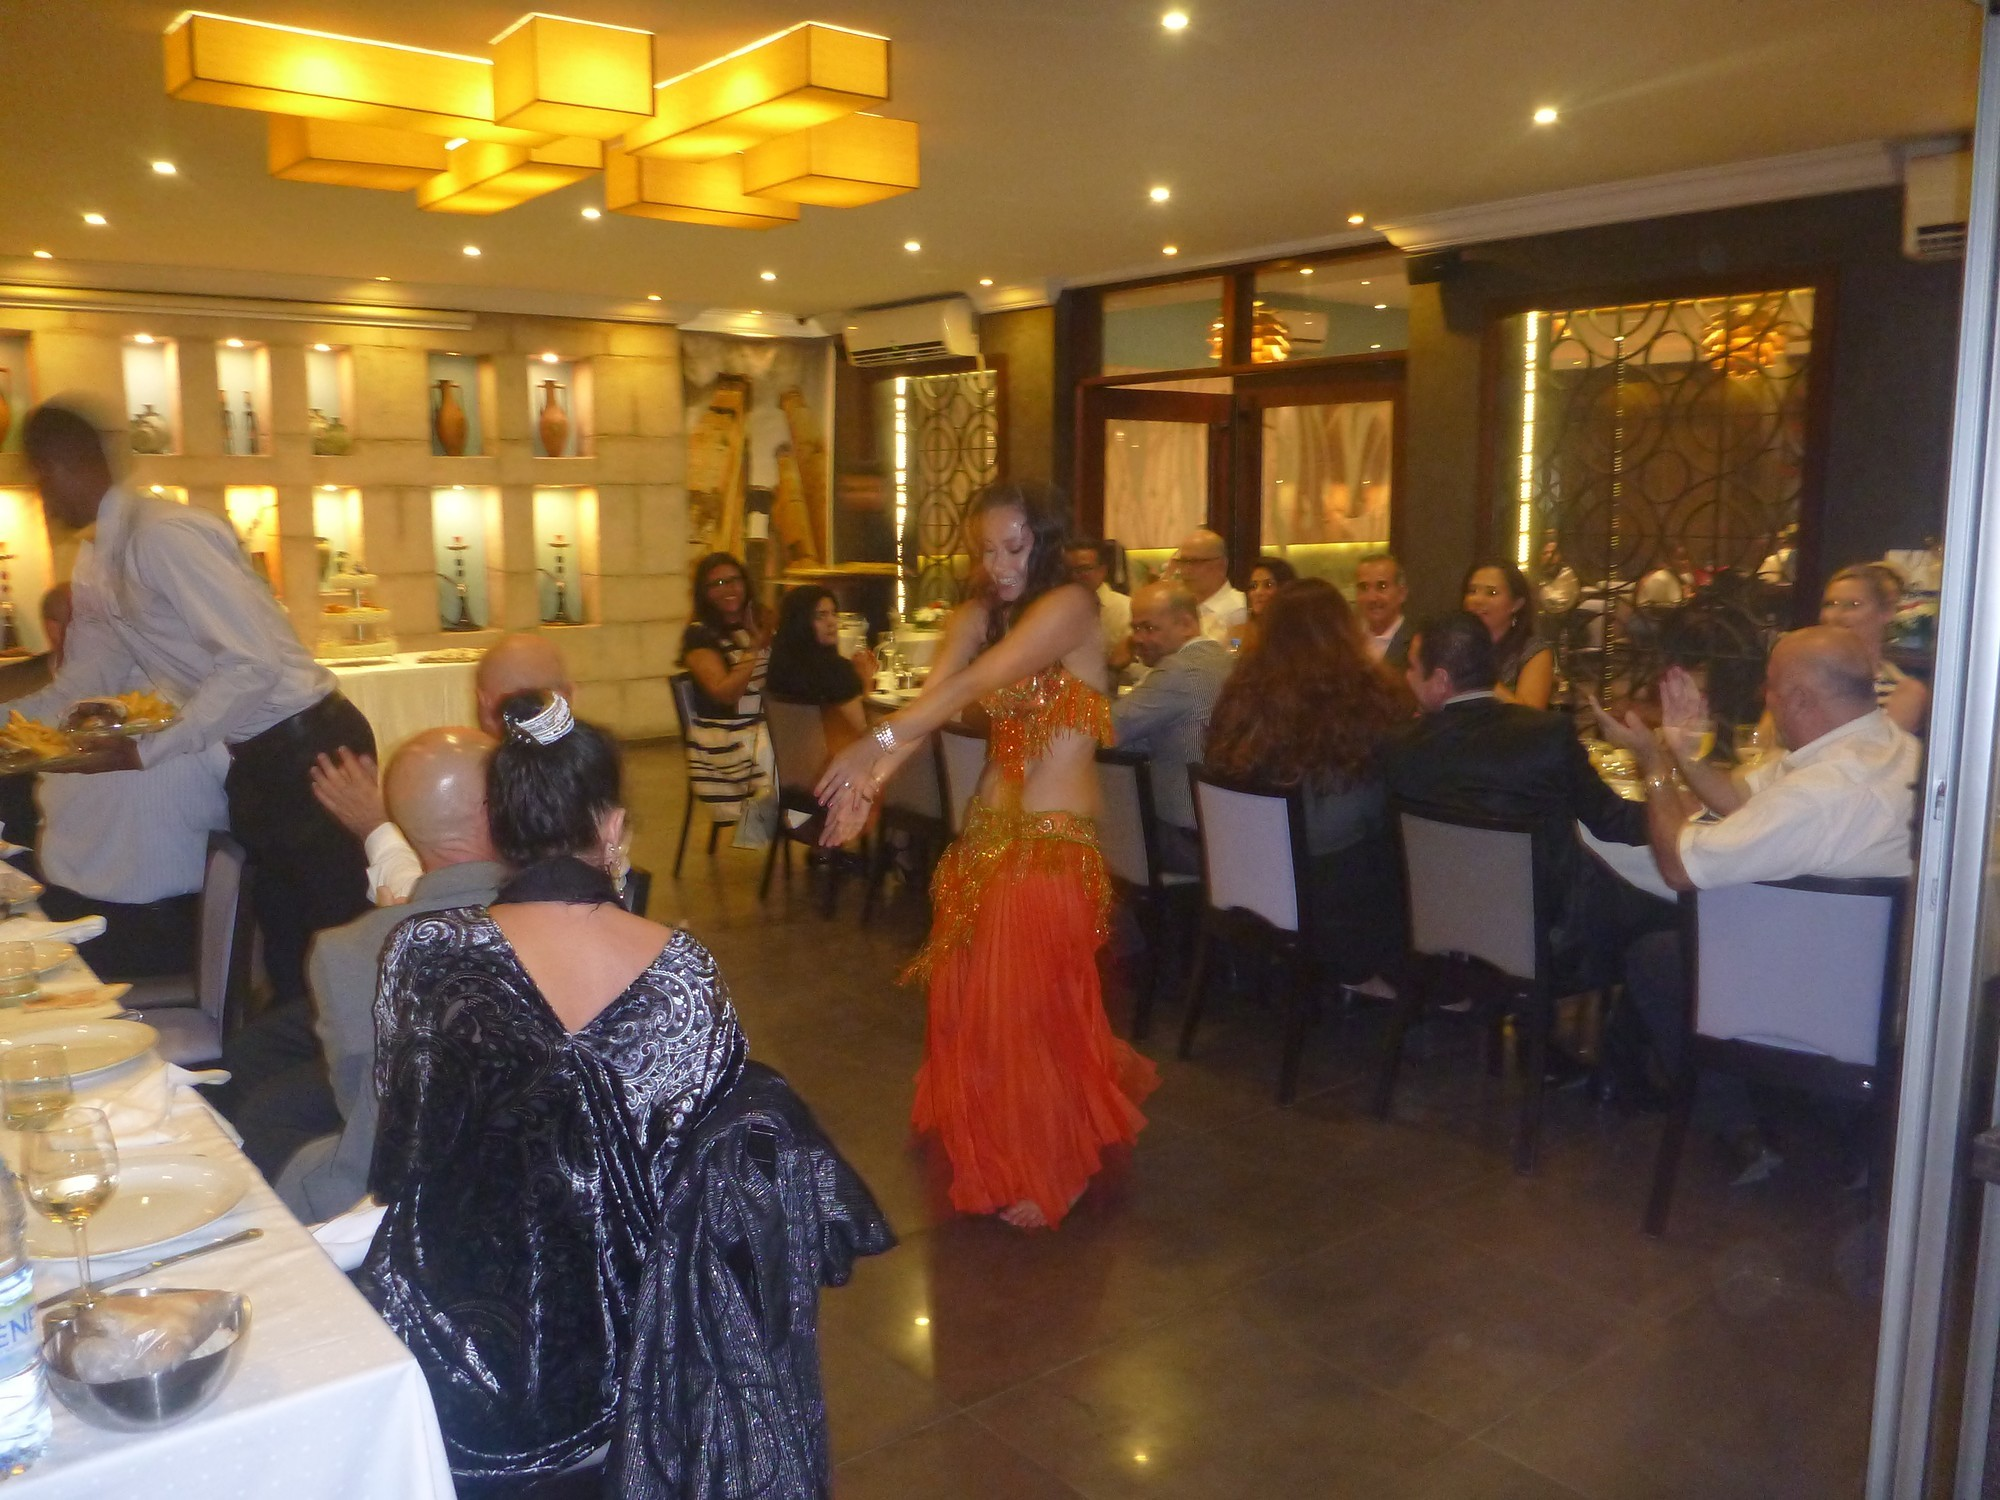 Watching Belly Dancing in Restaurant Farid, Dakar, Senegal